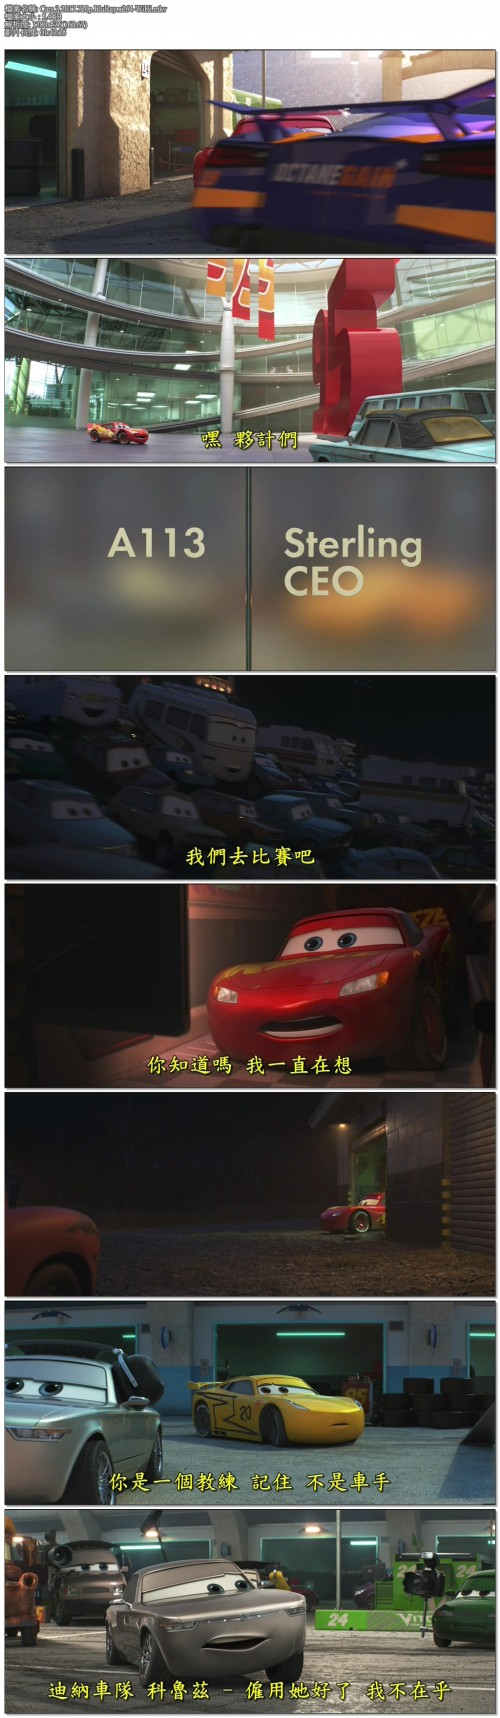 Cars.3.2017.720p.BluRay.x264-WiKi.mkv.jpg